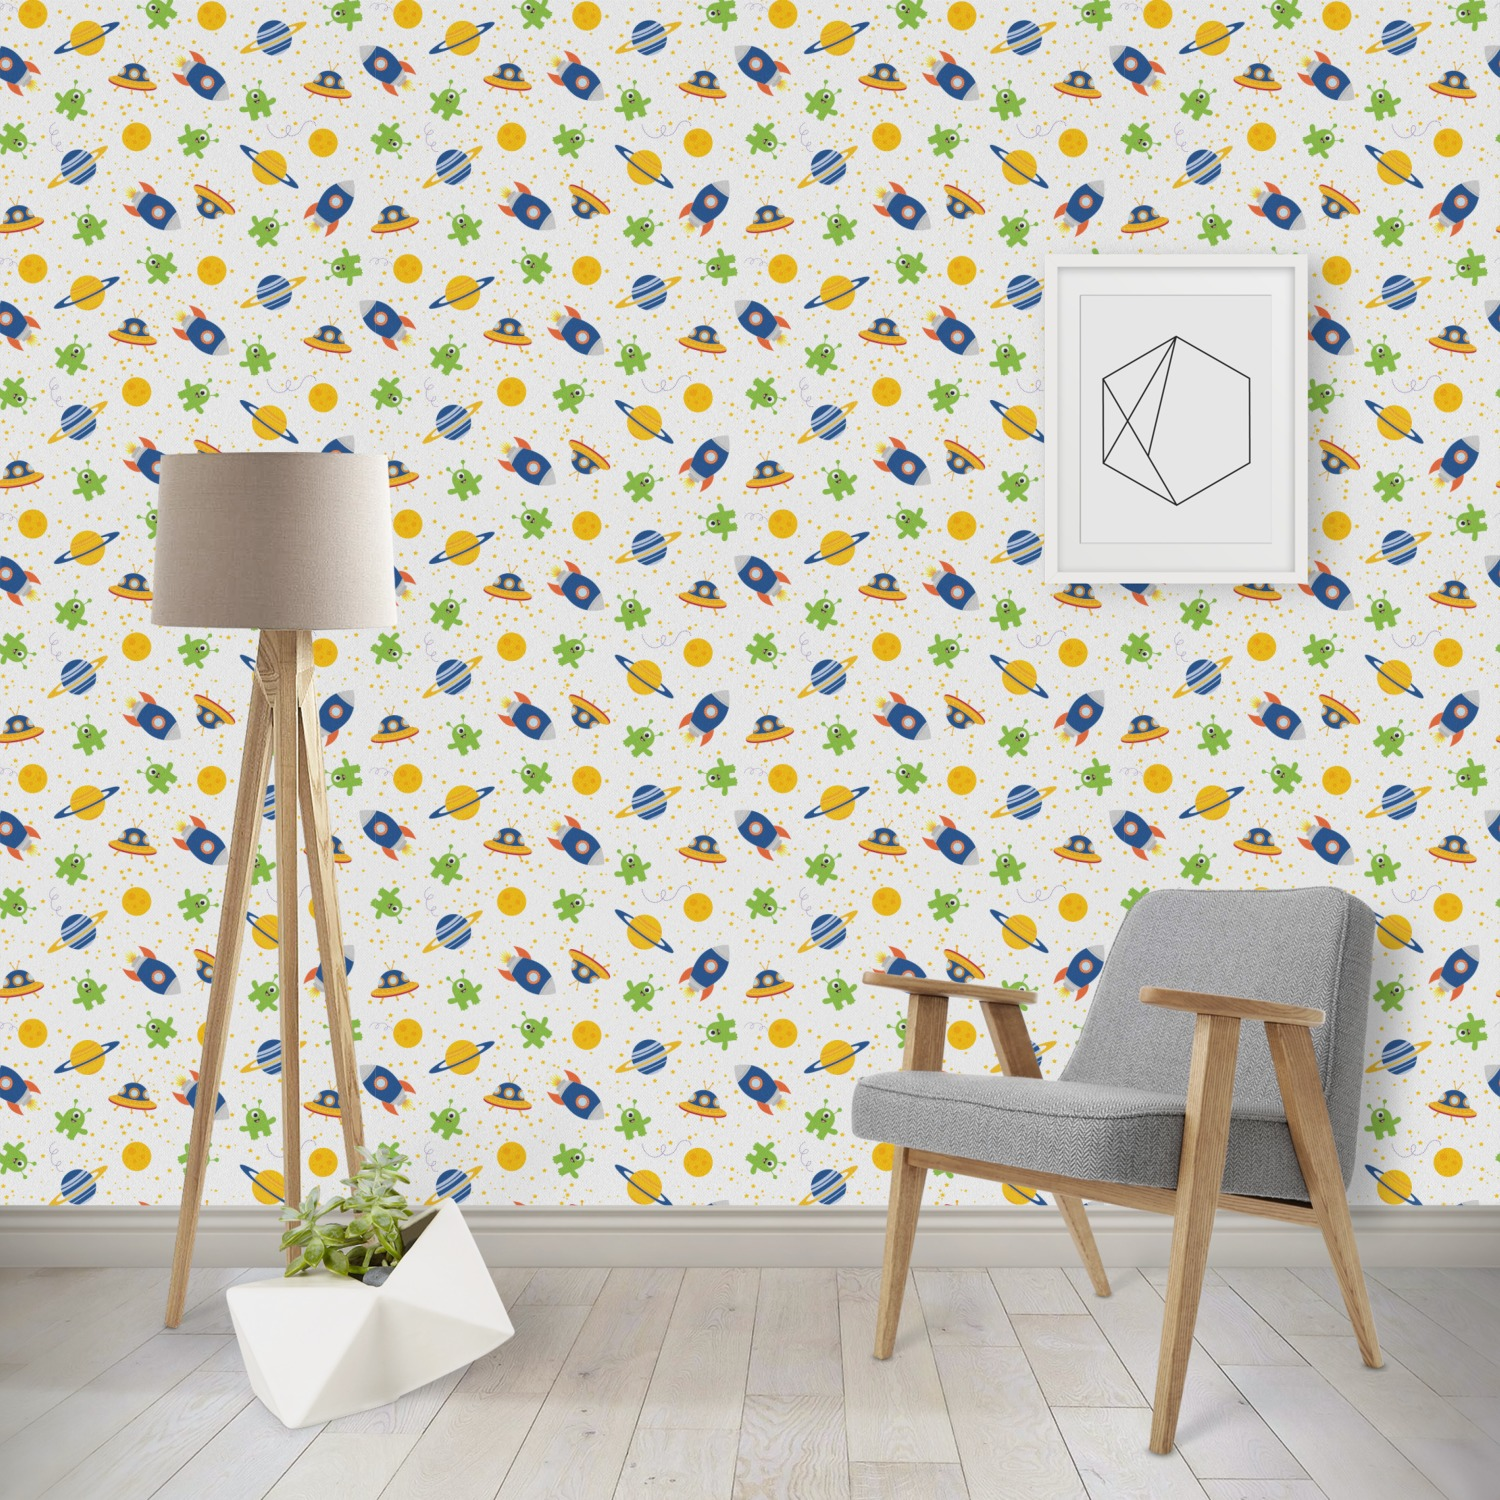 Boys Space Themed Wallpaper Surface Covering Youcustomizeit